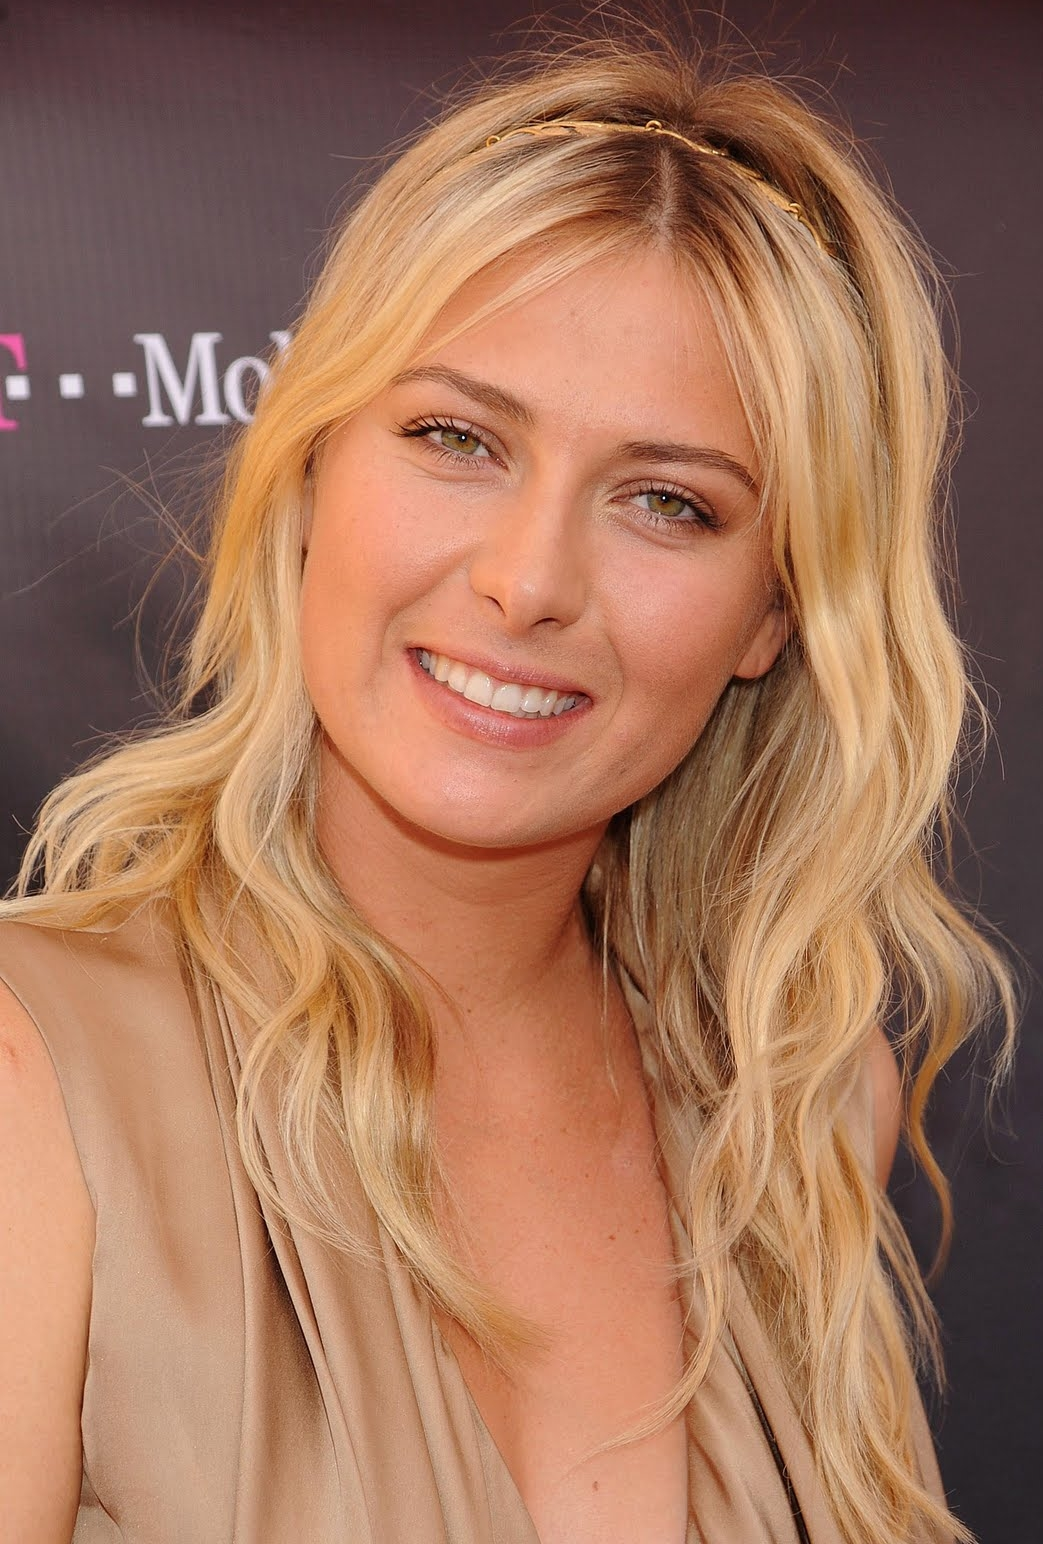 maria sharapova 2017maria sharapova instagram, maria sharapova wiki, maria sharapova biography, maria sharapova wikipedia, maria sharapova twitter, maria sharapova boyfriend, maria sharapova interview, maria sharapova 2017, maria sharapova vk, maria sharapova net worth, maria sharapova facebook, maria sharapova 2016, maria sharapova parfum, maria sharapova news, maria sharapova sports illustrated, maria sharapova nike, maria sharapova and grigor dimitrov, maria sharapova autobiography, maria sharapova house, maria sharapova husband